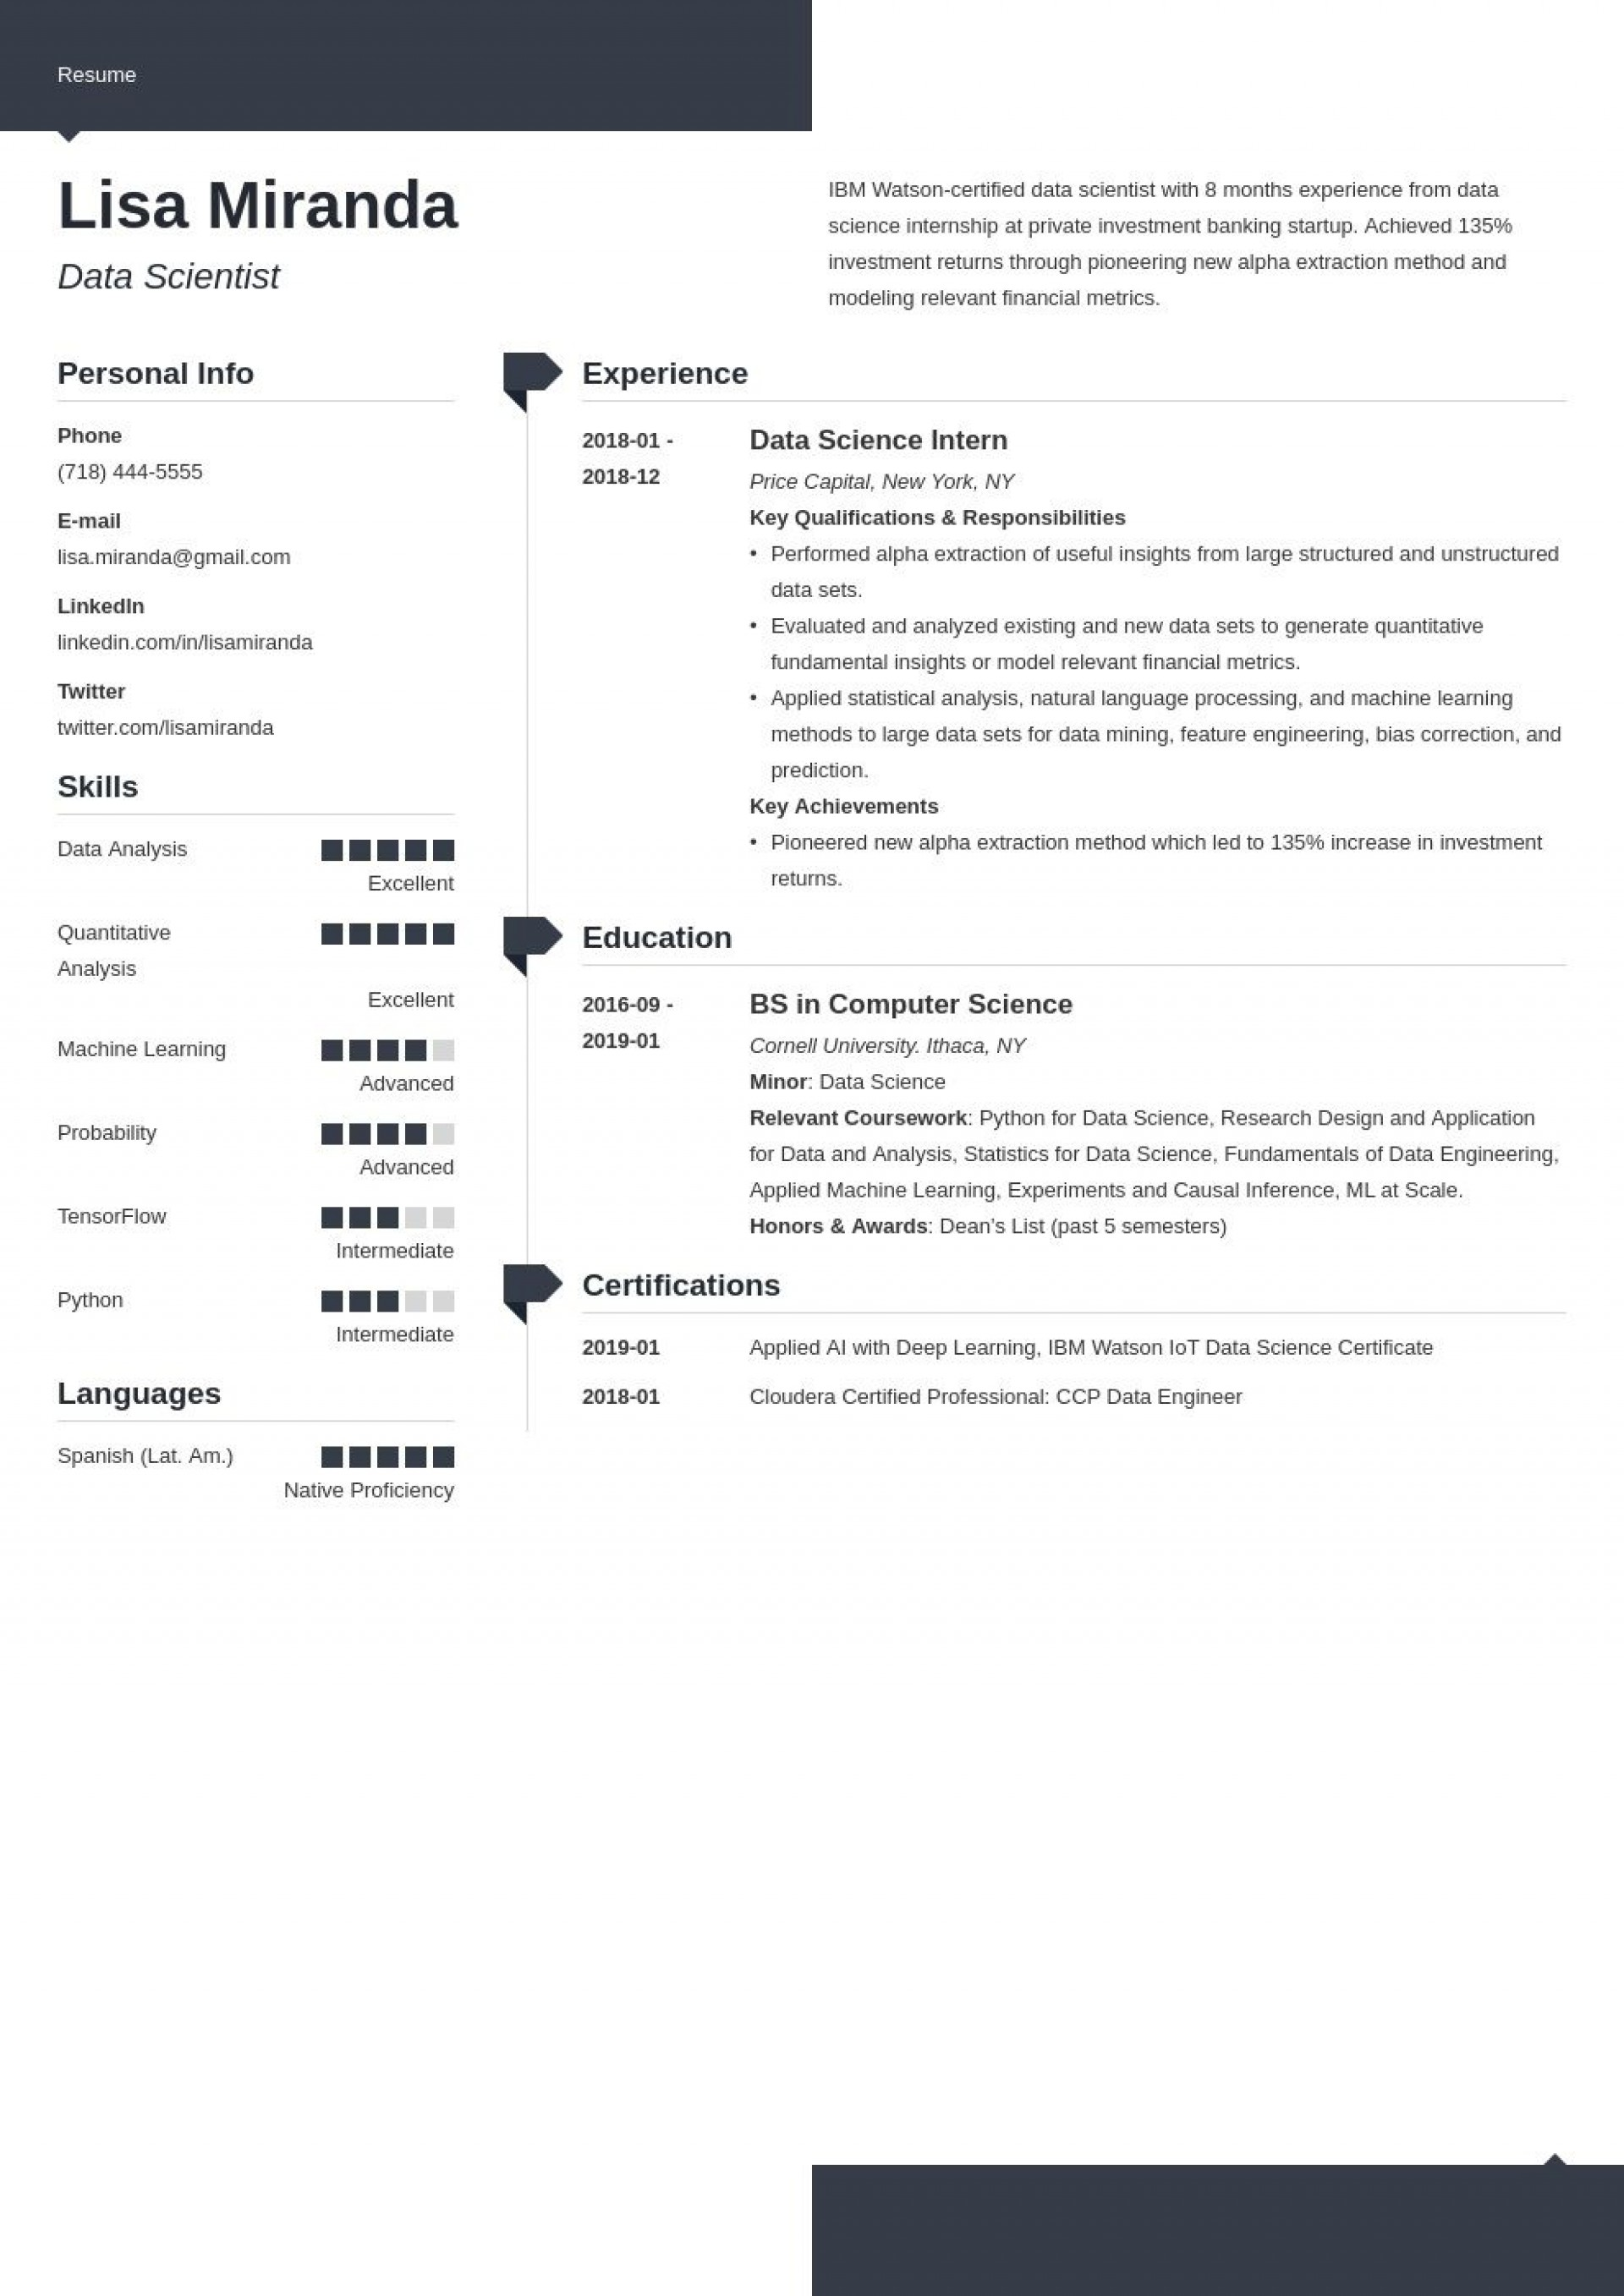 005 Incredible Recent College Graduate Resume Template Image  Word1920